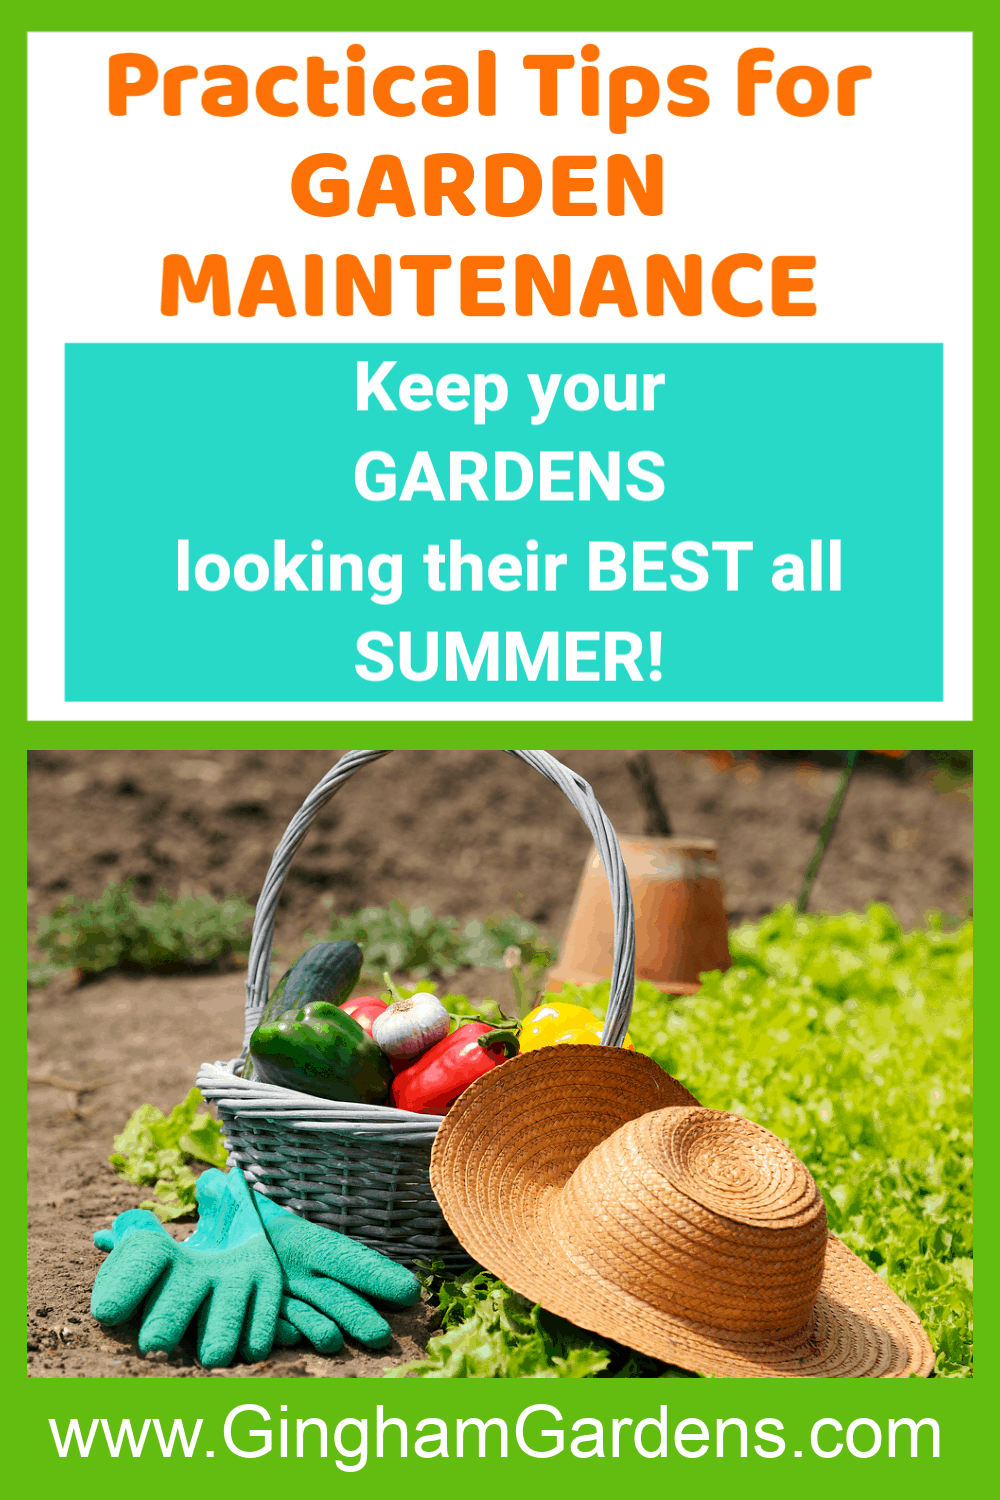 Image of Gardening Stuff with text overlay - Practical Tips for Garden Maintenance